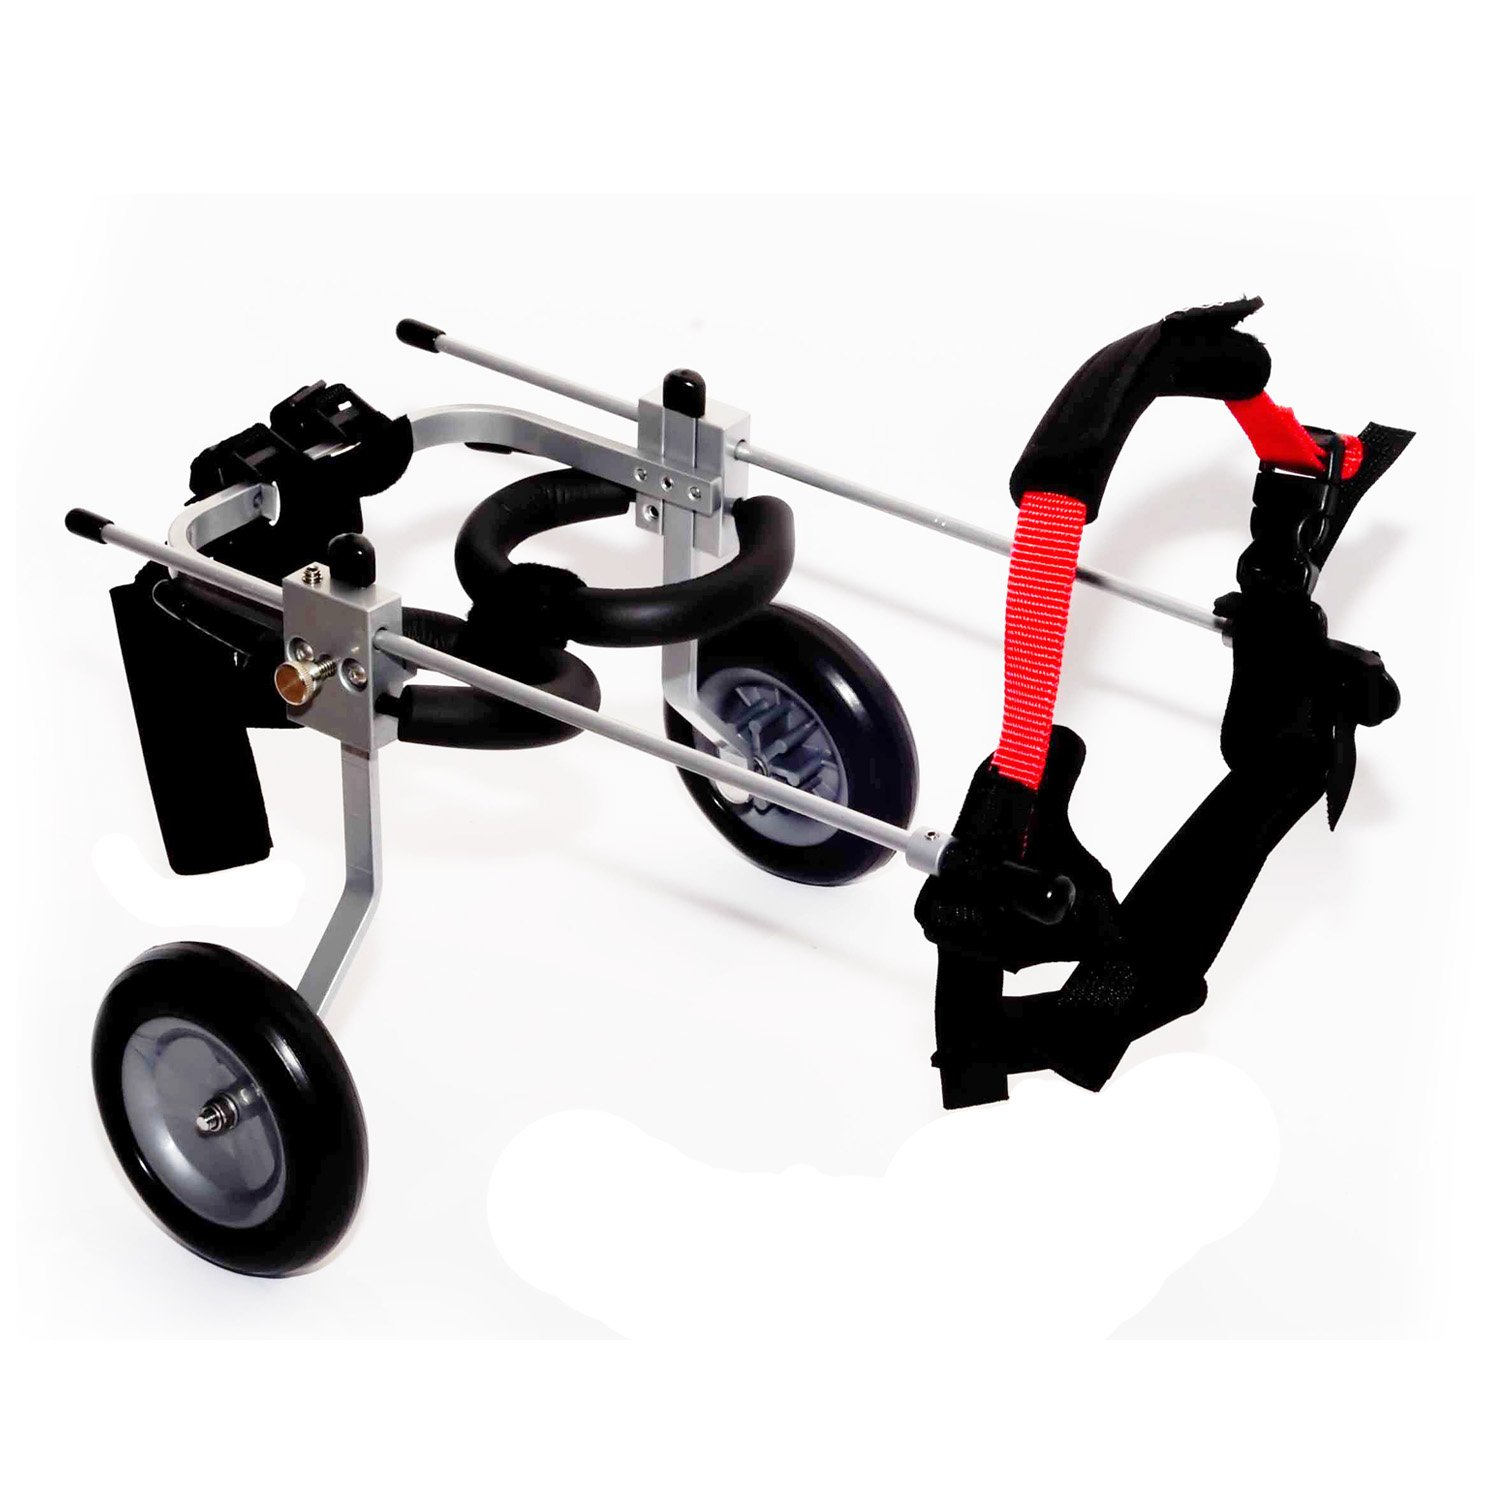 Best Friend Mobility BFMS-S&J Elite Dog Wheelchair, Small by Best Friend Mobility (Image #1)